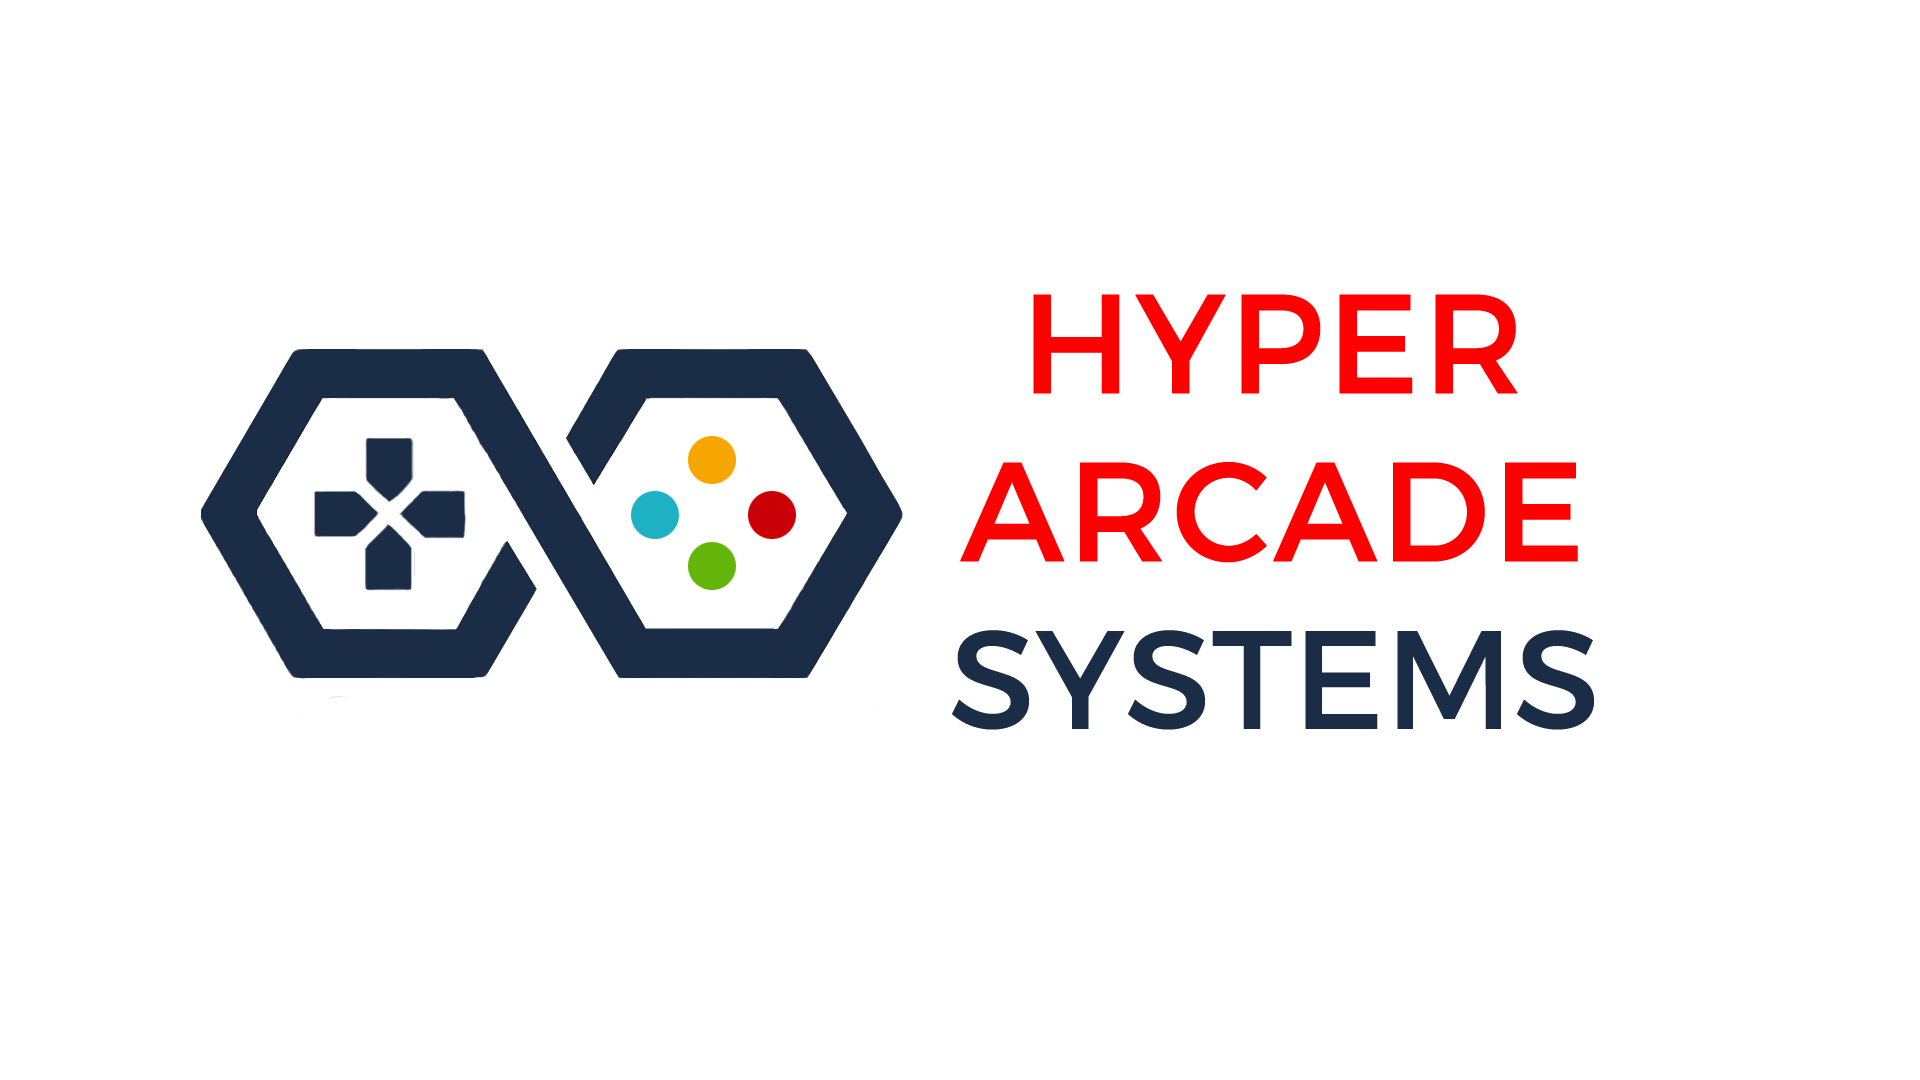 Hyper Arcade Systems - Hyperspin Setups made easy